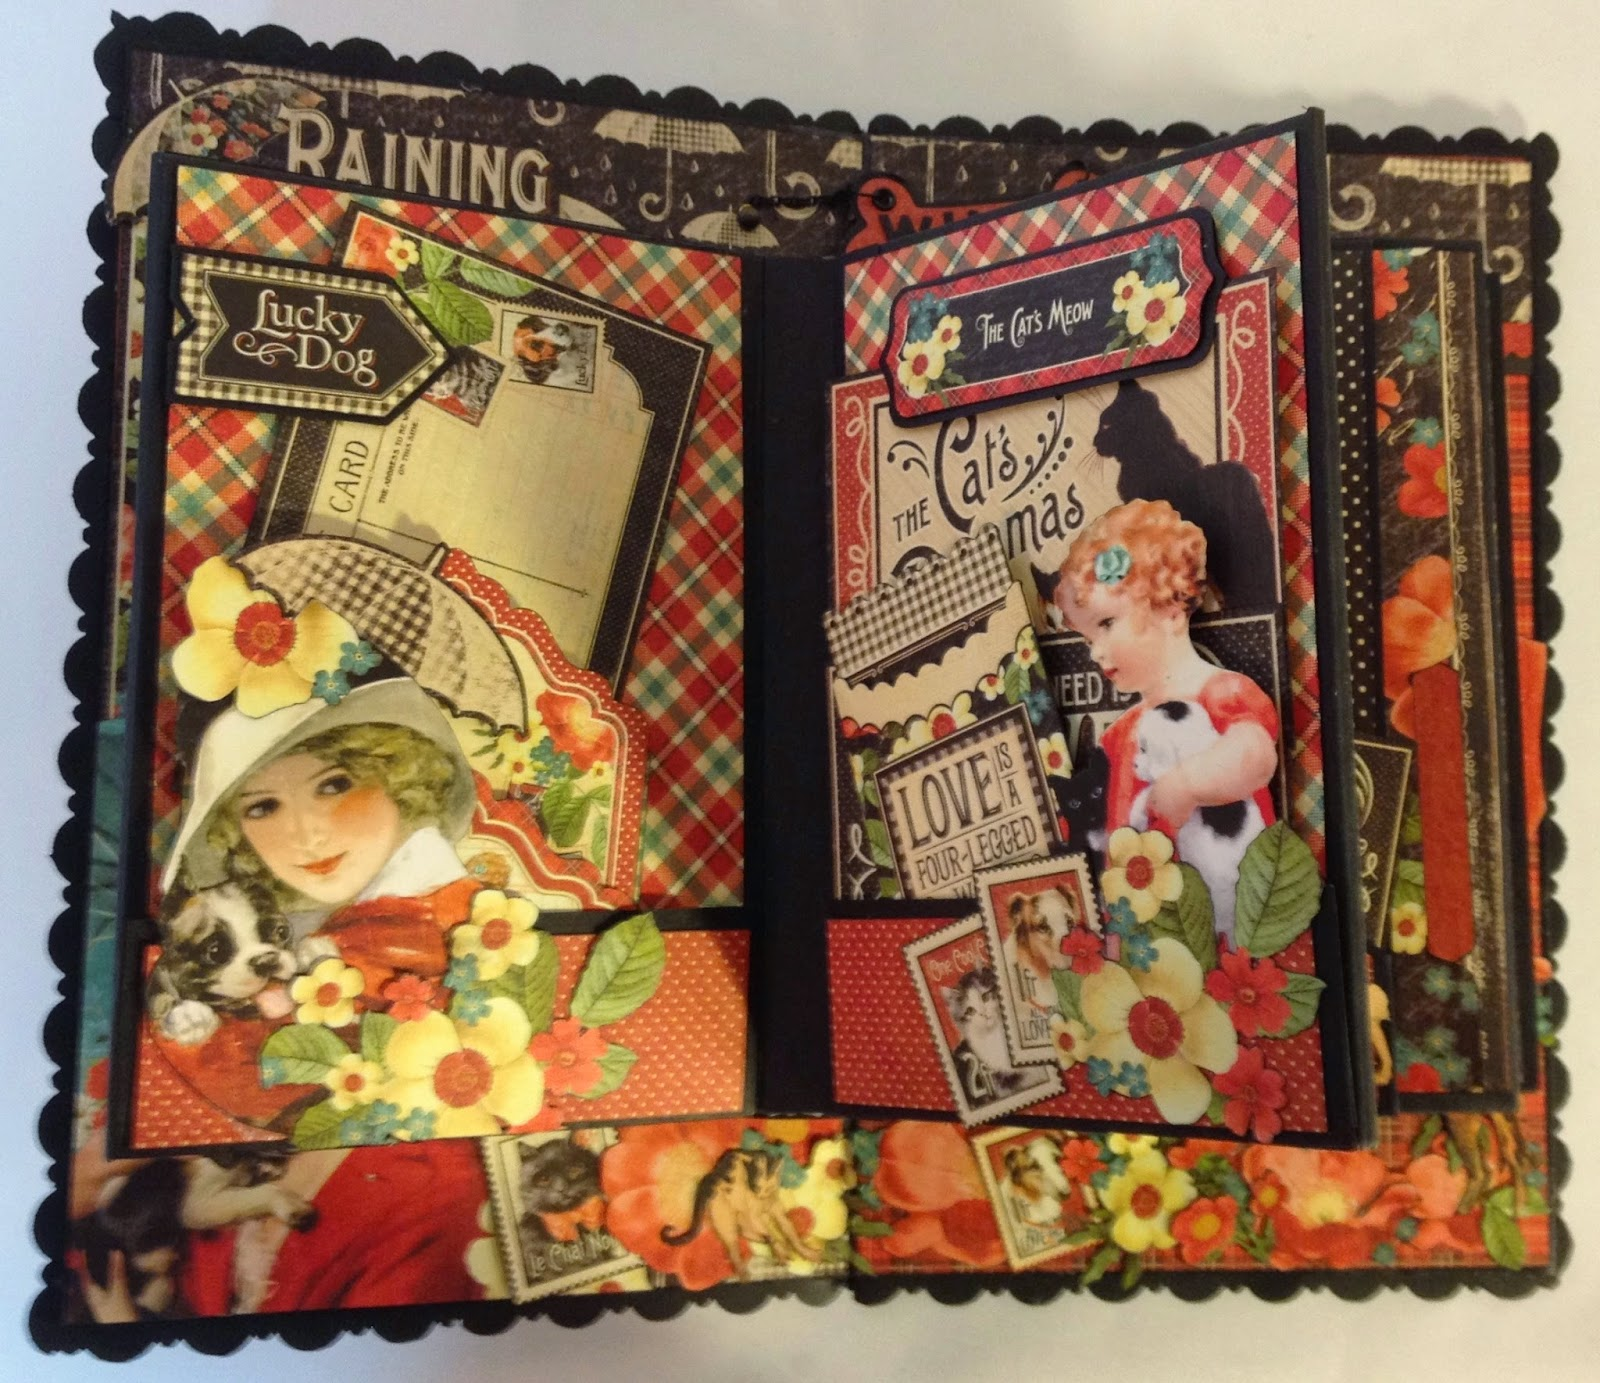 How to make scrapbook video - In This Video I Will Show How To Make And Fold The 2 Page Make Some Tags Pockets And File Folder And Start Decorate The Flaps And Fold Outs On This 2